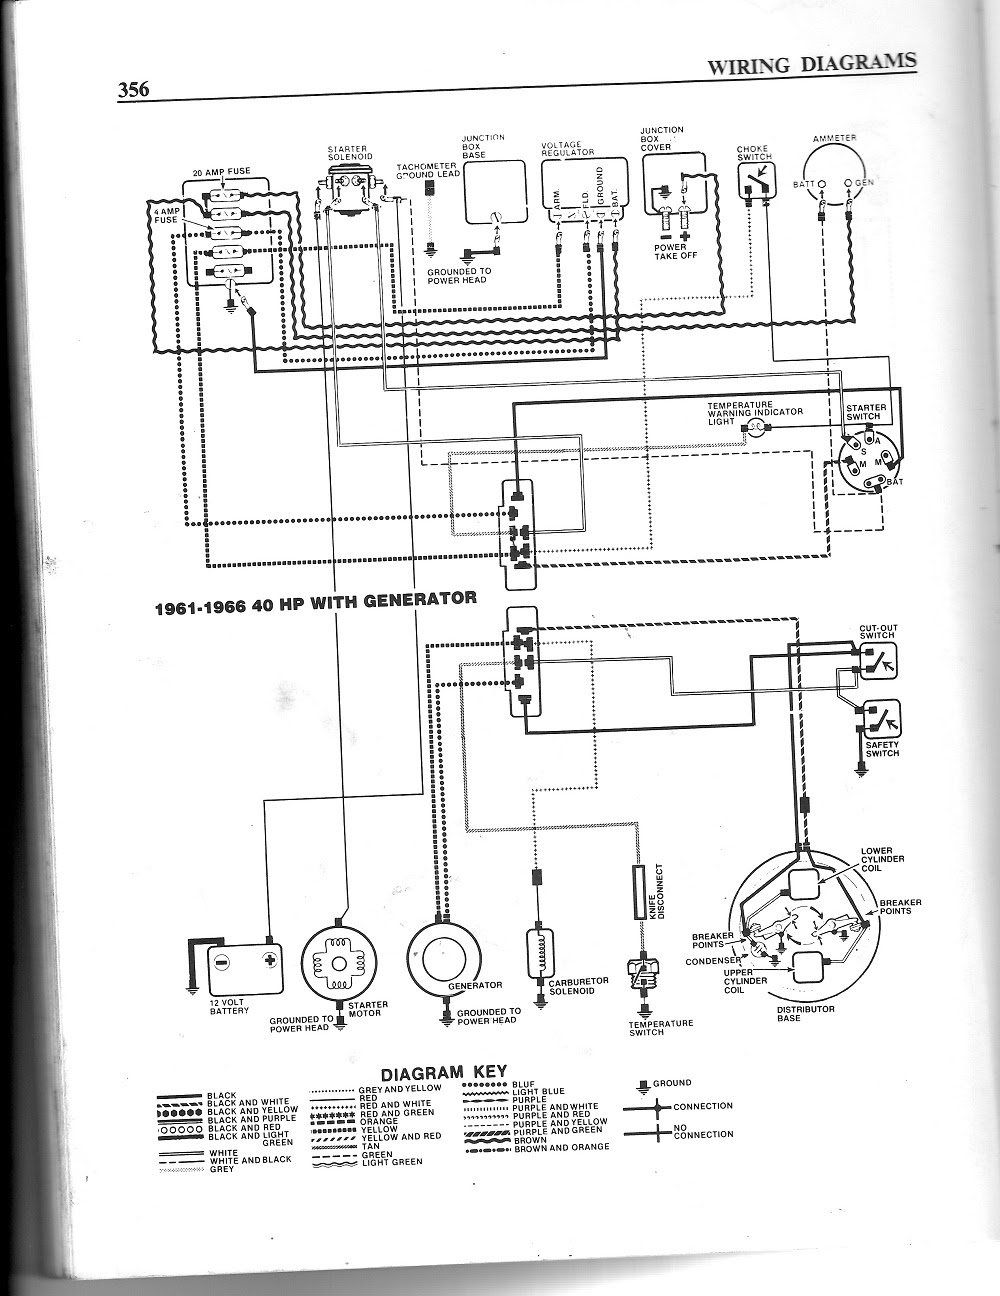 Free Diagram 1953 Mercury Wiring Diagram Full Version Hd Quality Wiring Diagram Ilwiring Bandb Veneto It